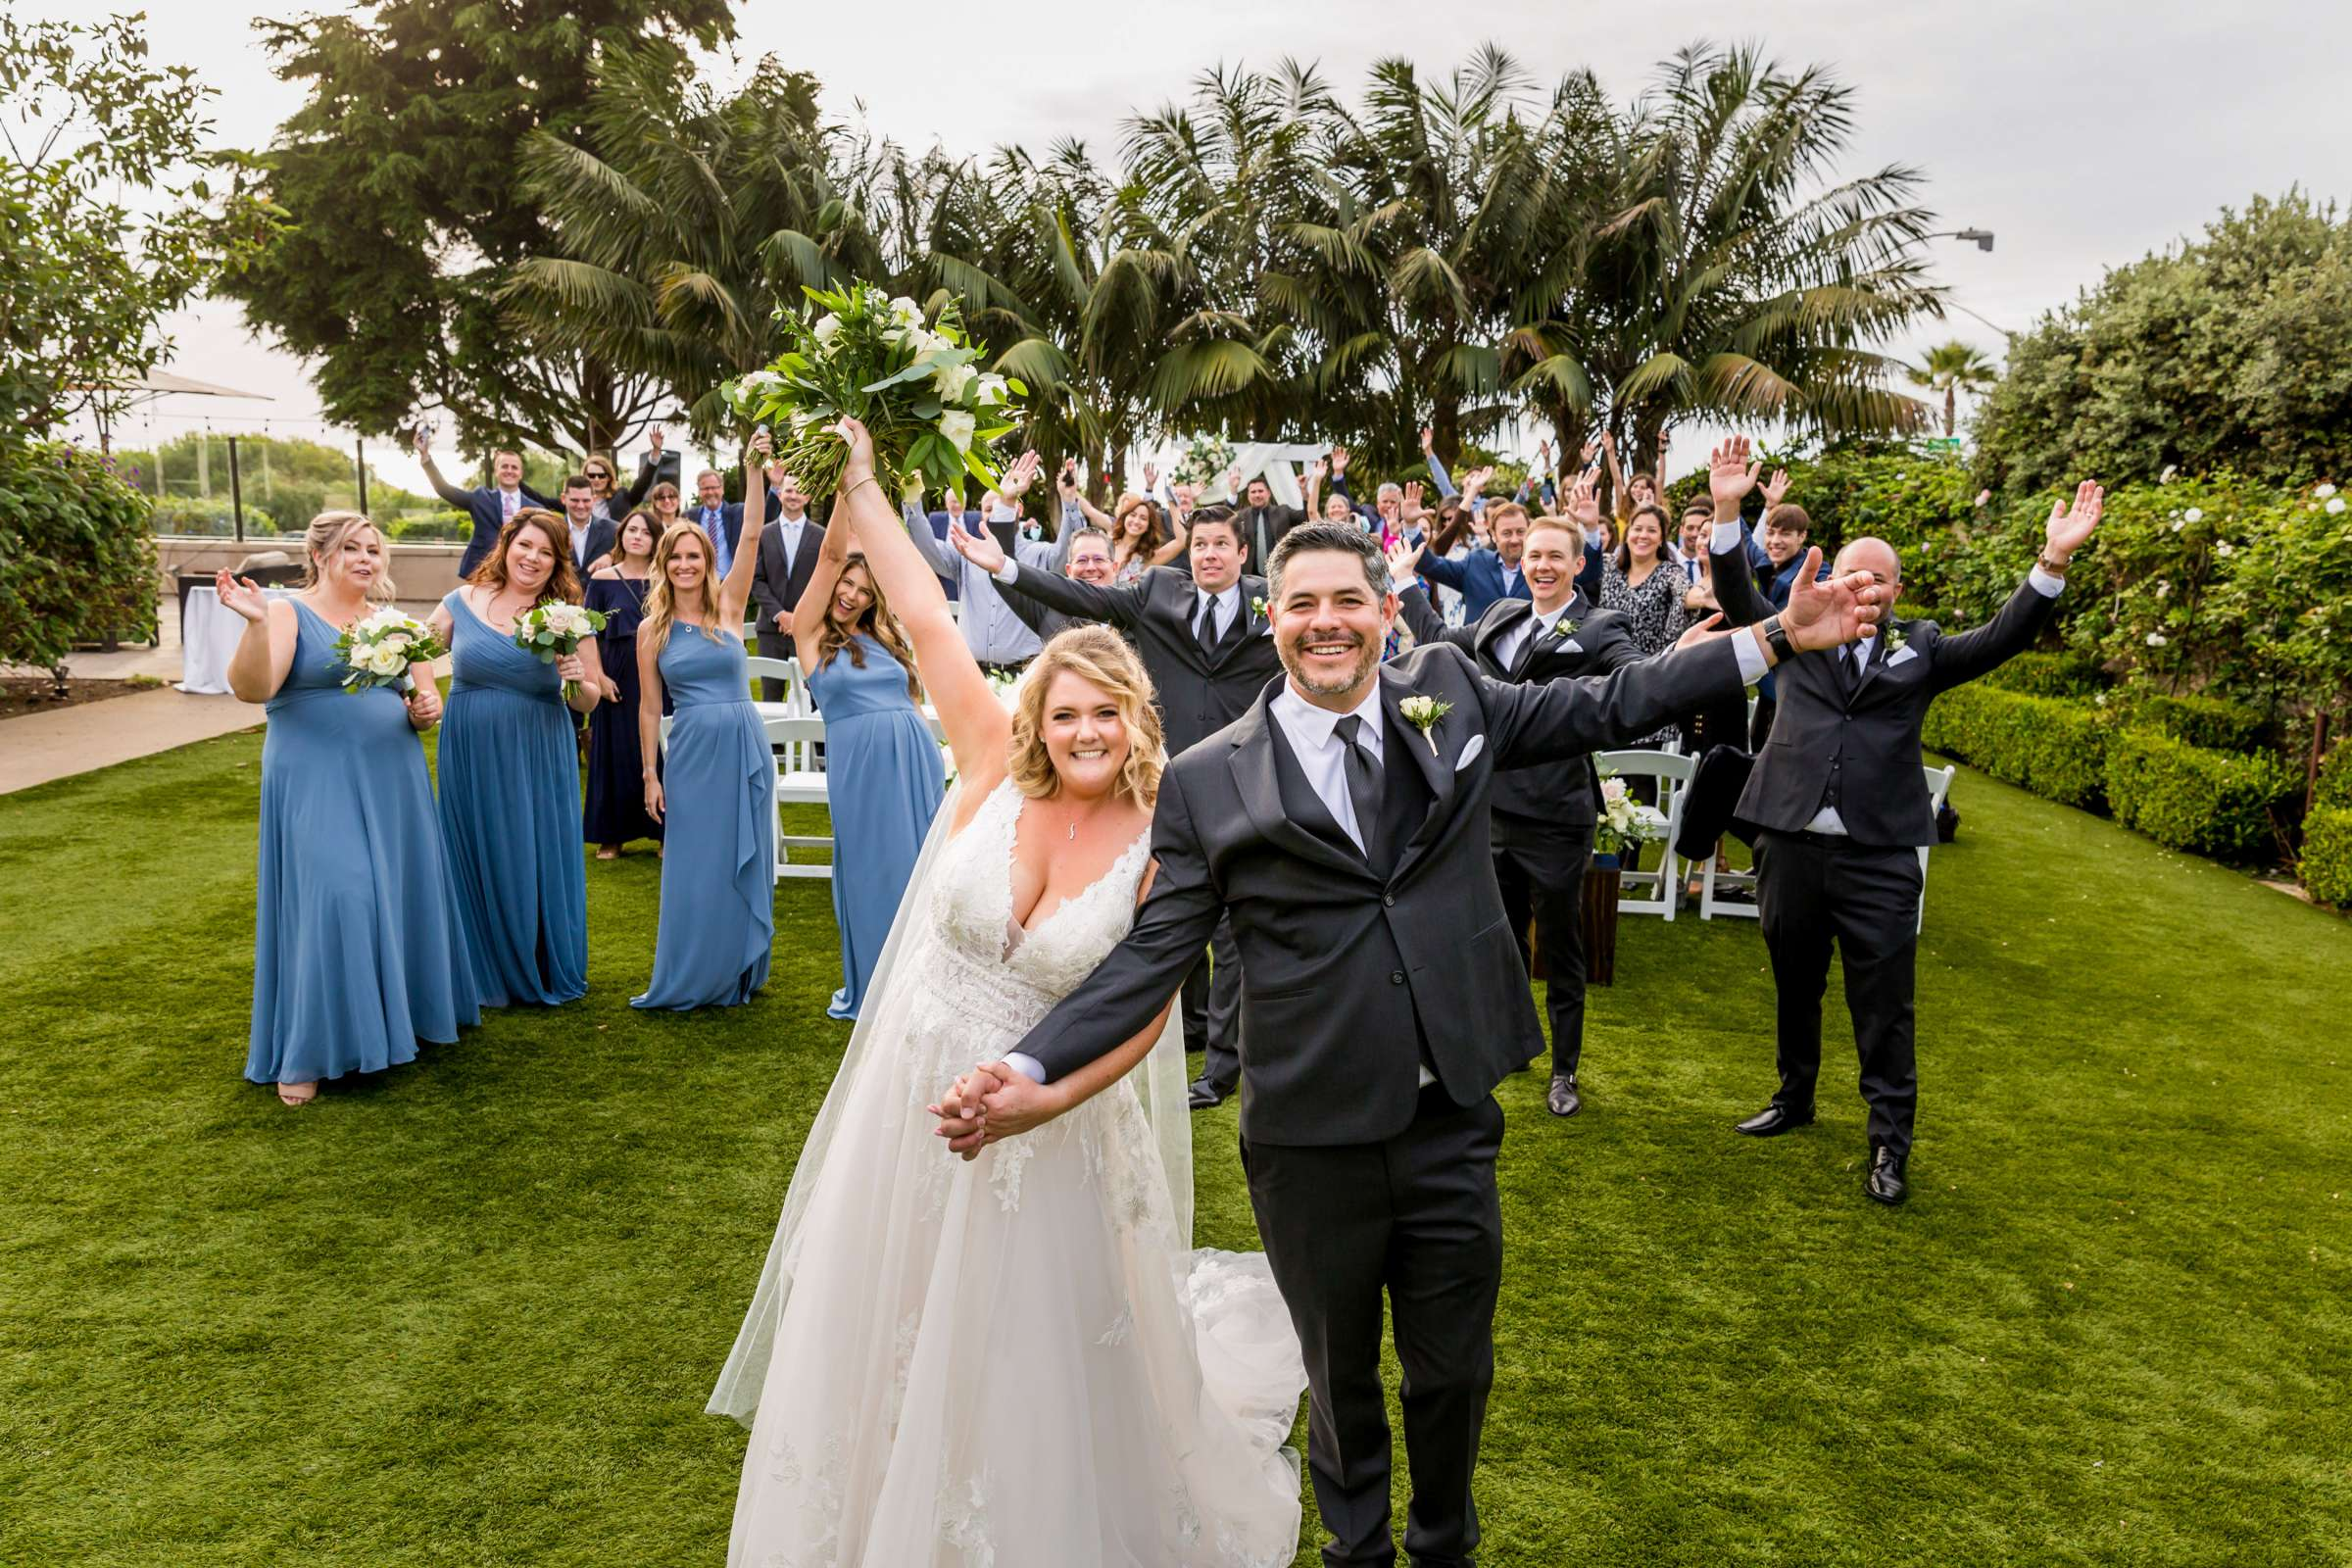 Cape Rey Carlsbad, A Hilton Resort Wedding, Michelle and Justin Wedding Photo #10 by True Photography